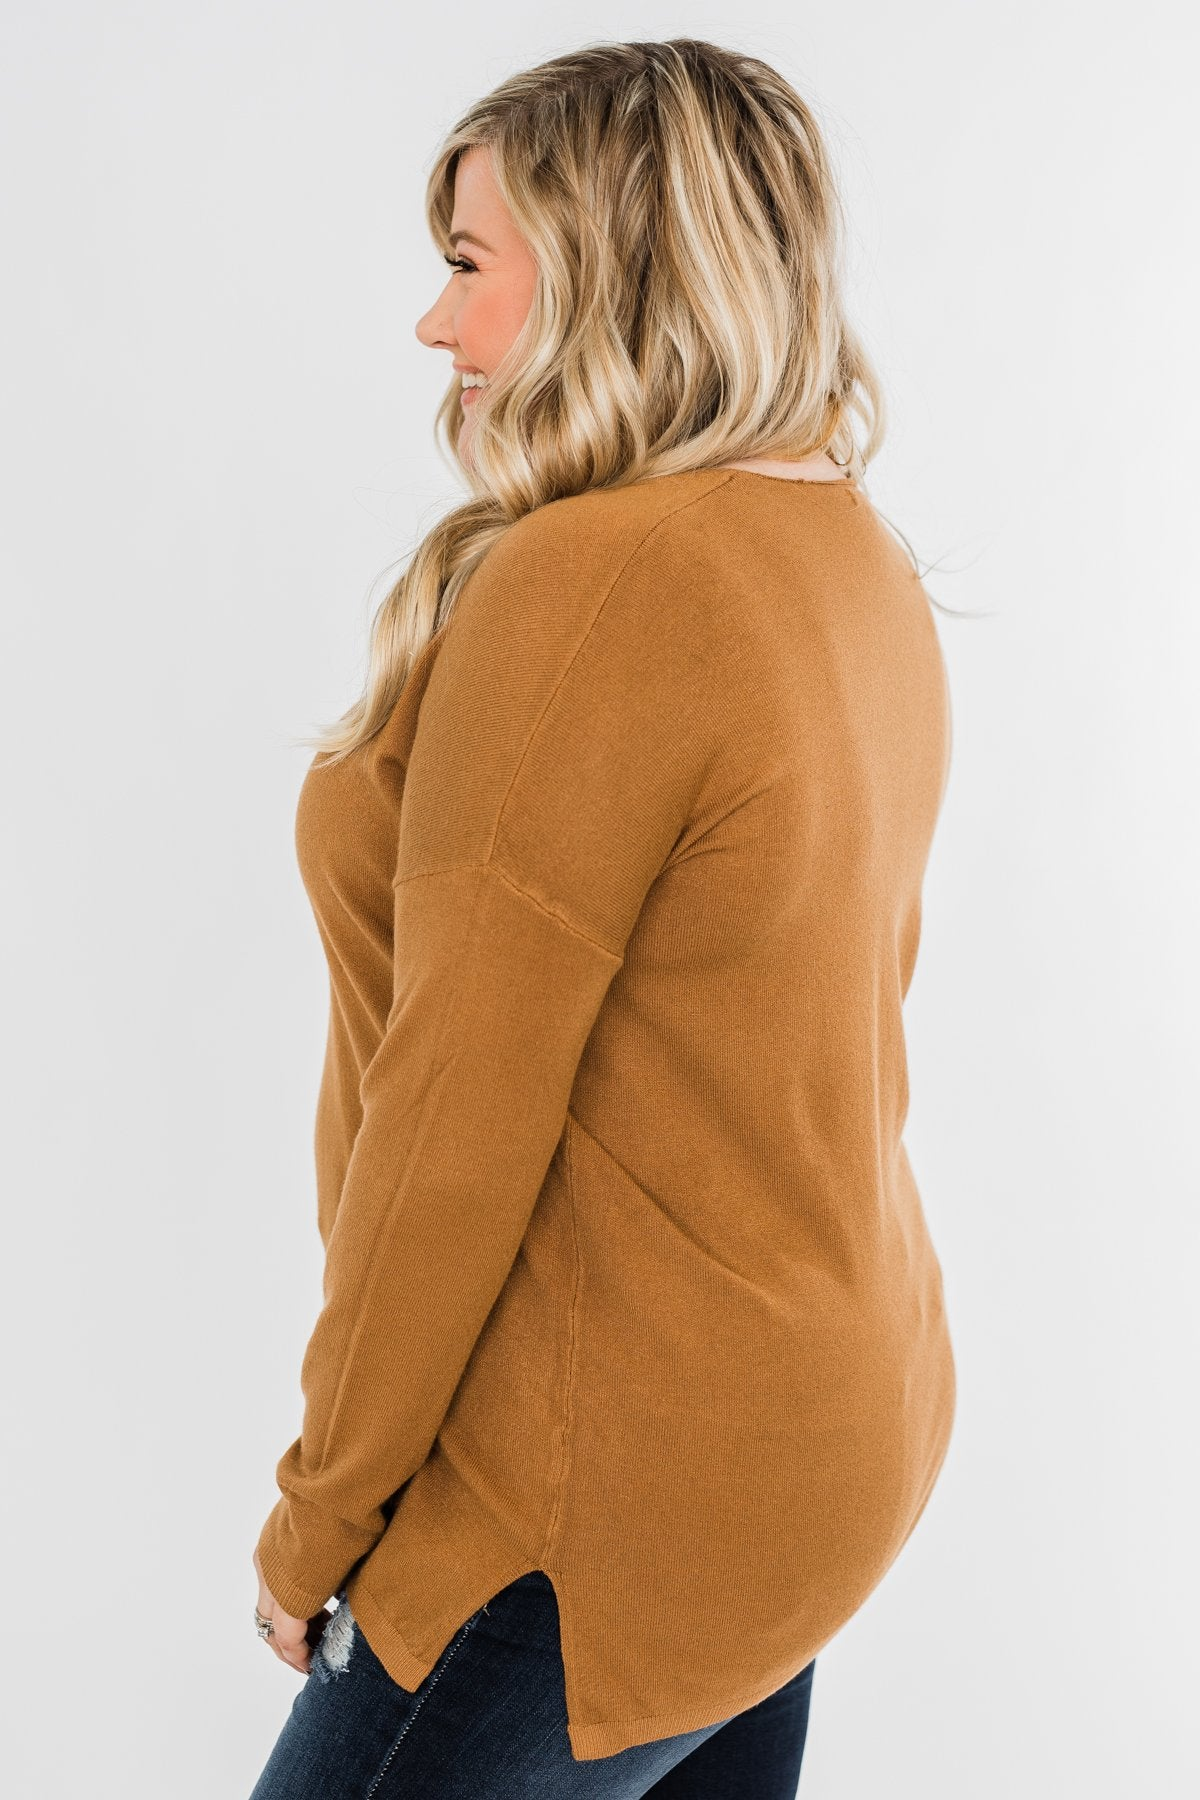 Truly Yours Sweater- Dark Camel